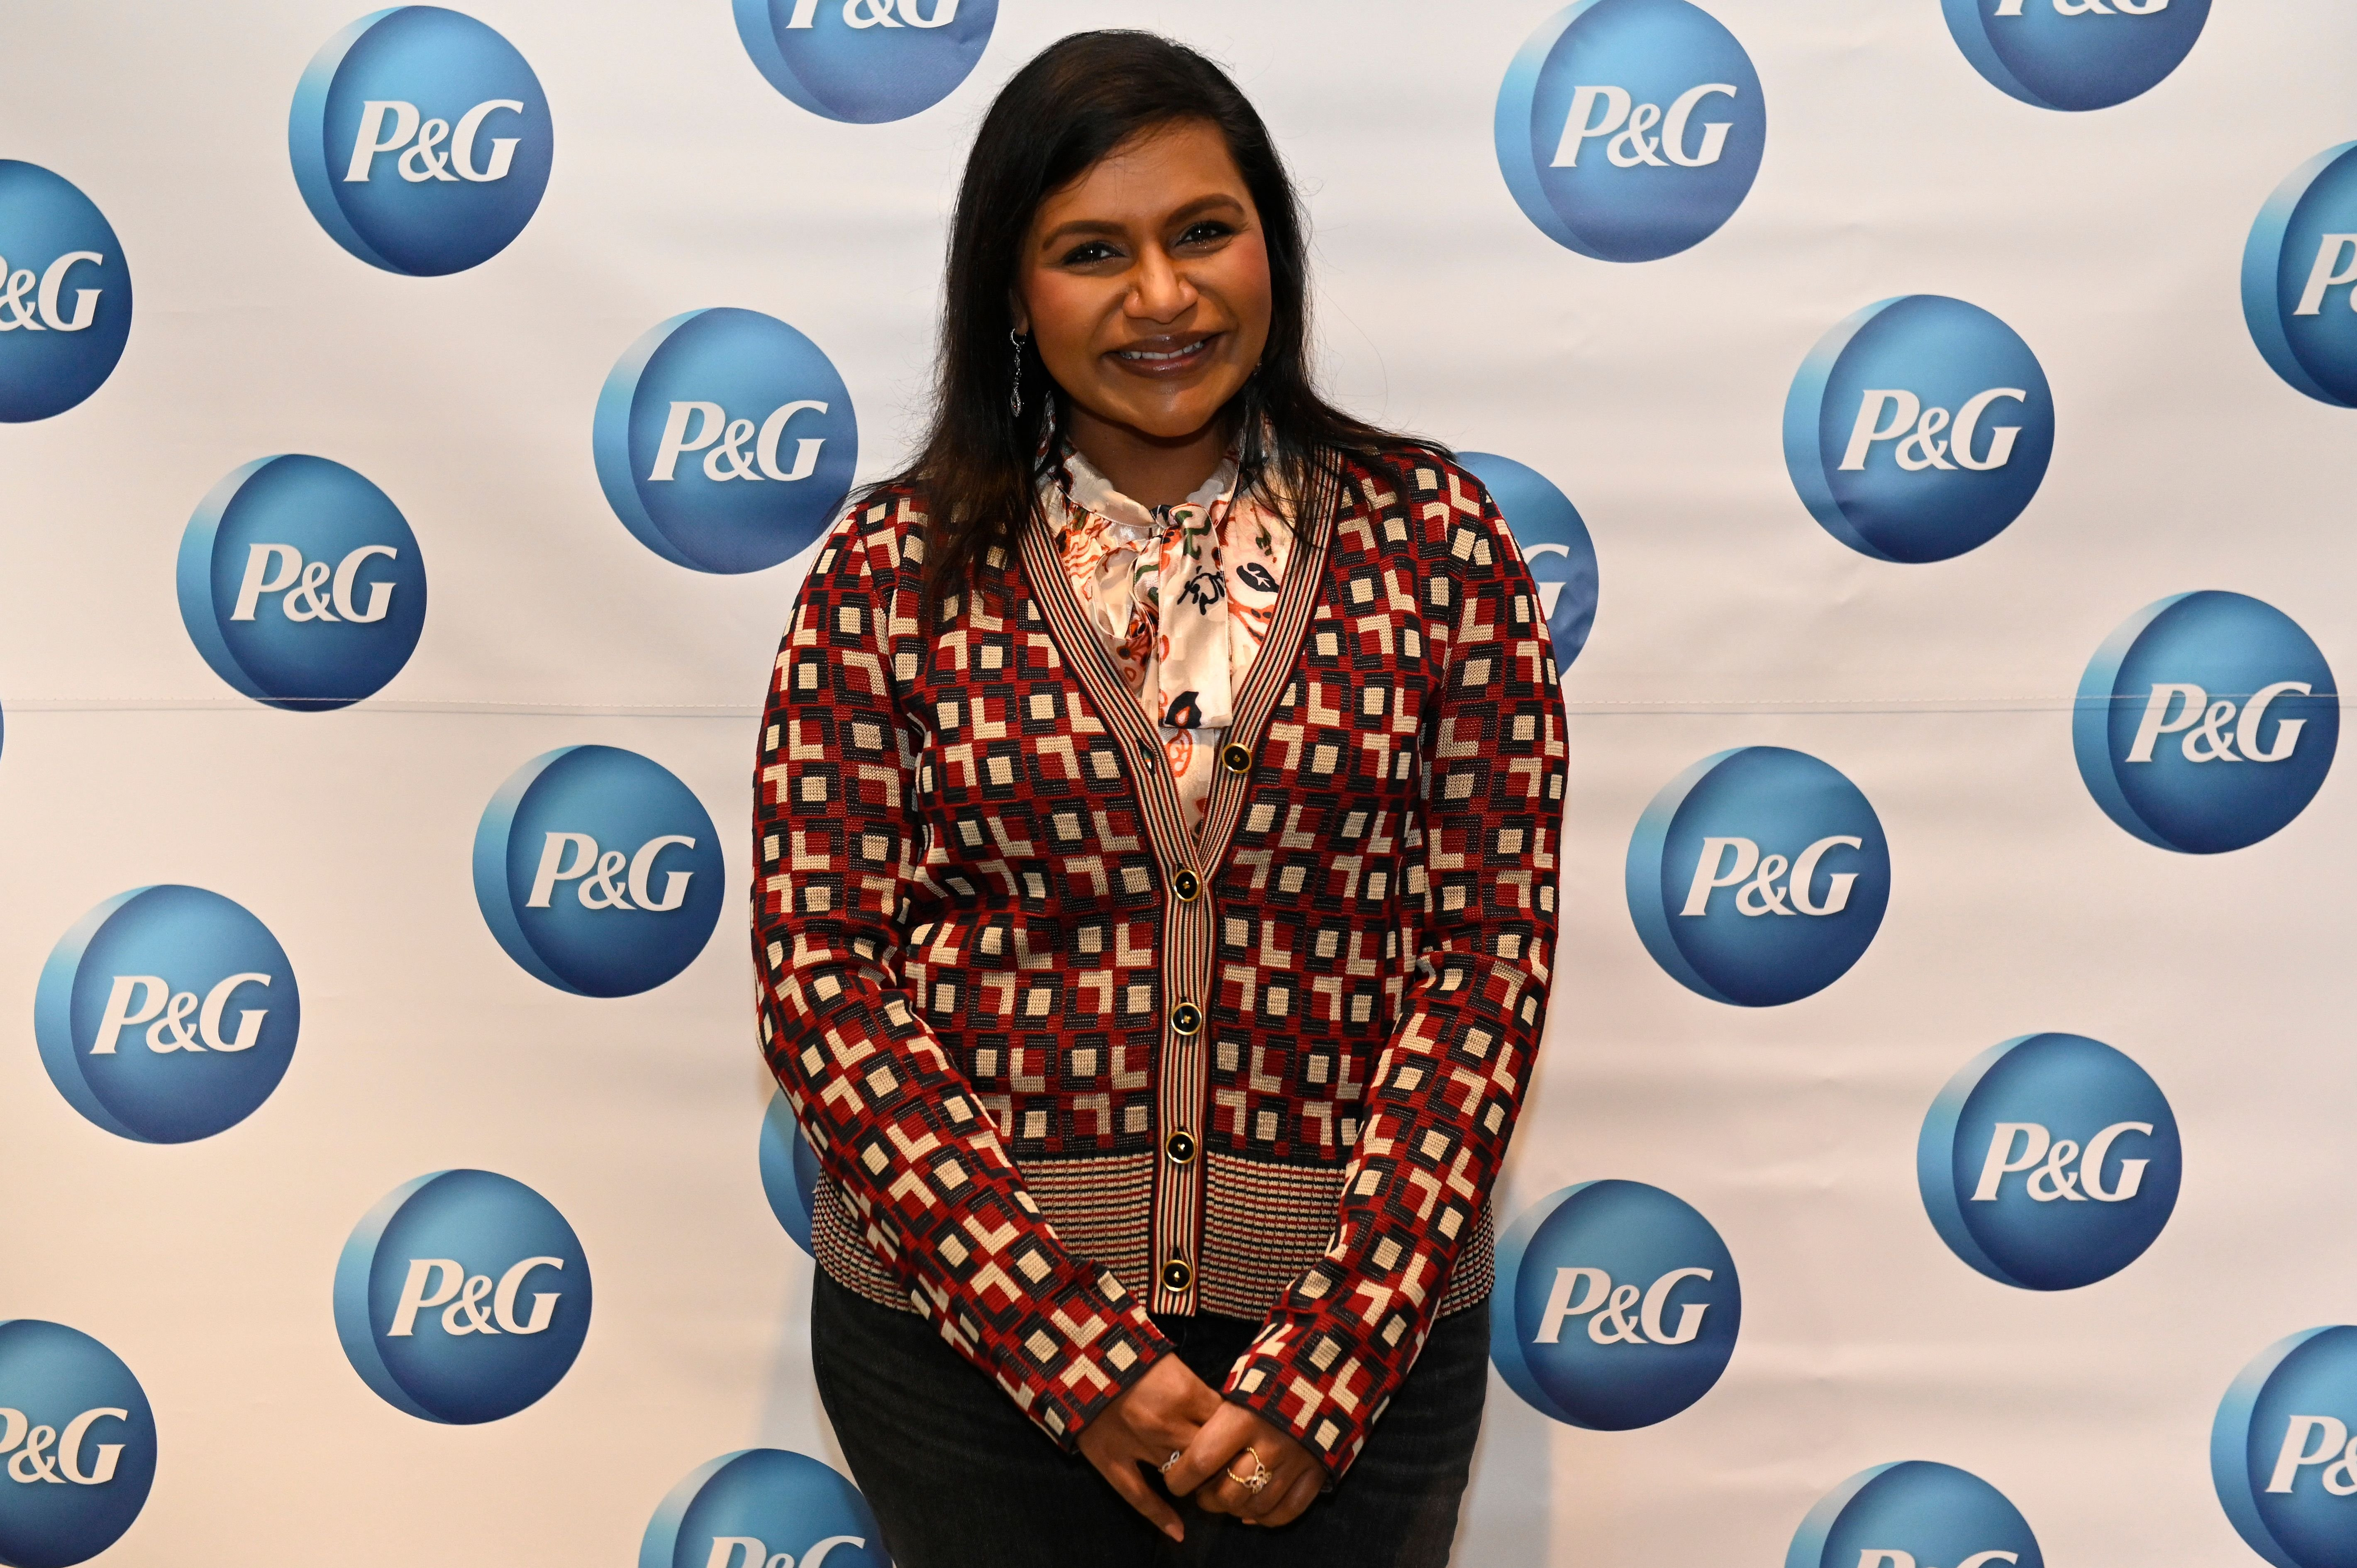 Mindy Kaling at the P&G #WeSeeEqual Forum held at Proctor & Gamble on March 04, 2020, in Cincinnati, Ohio | Photo: Duane Prokop/Getty Images